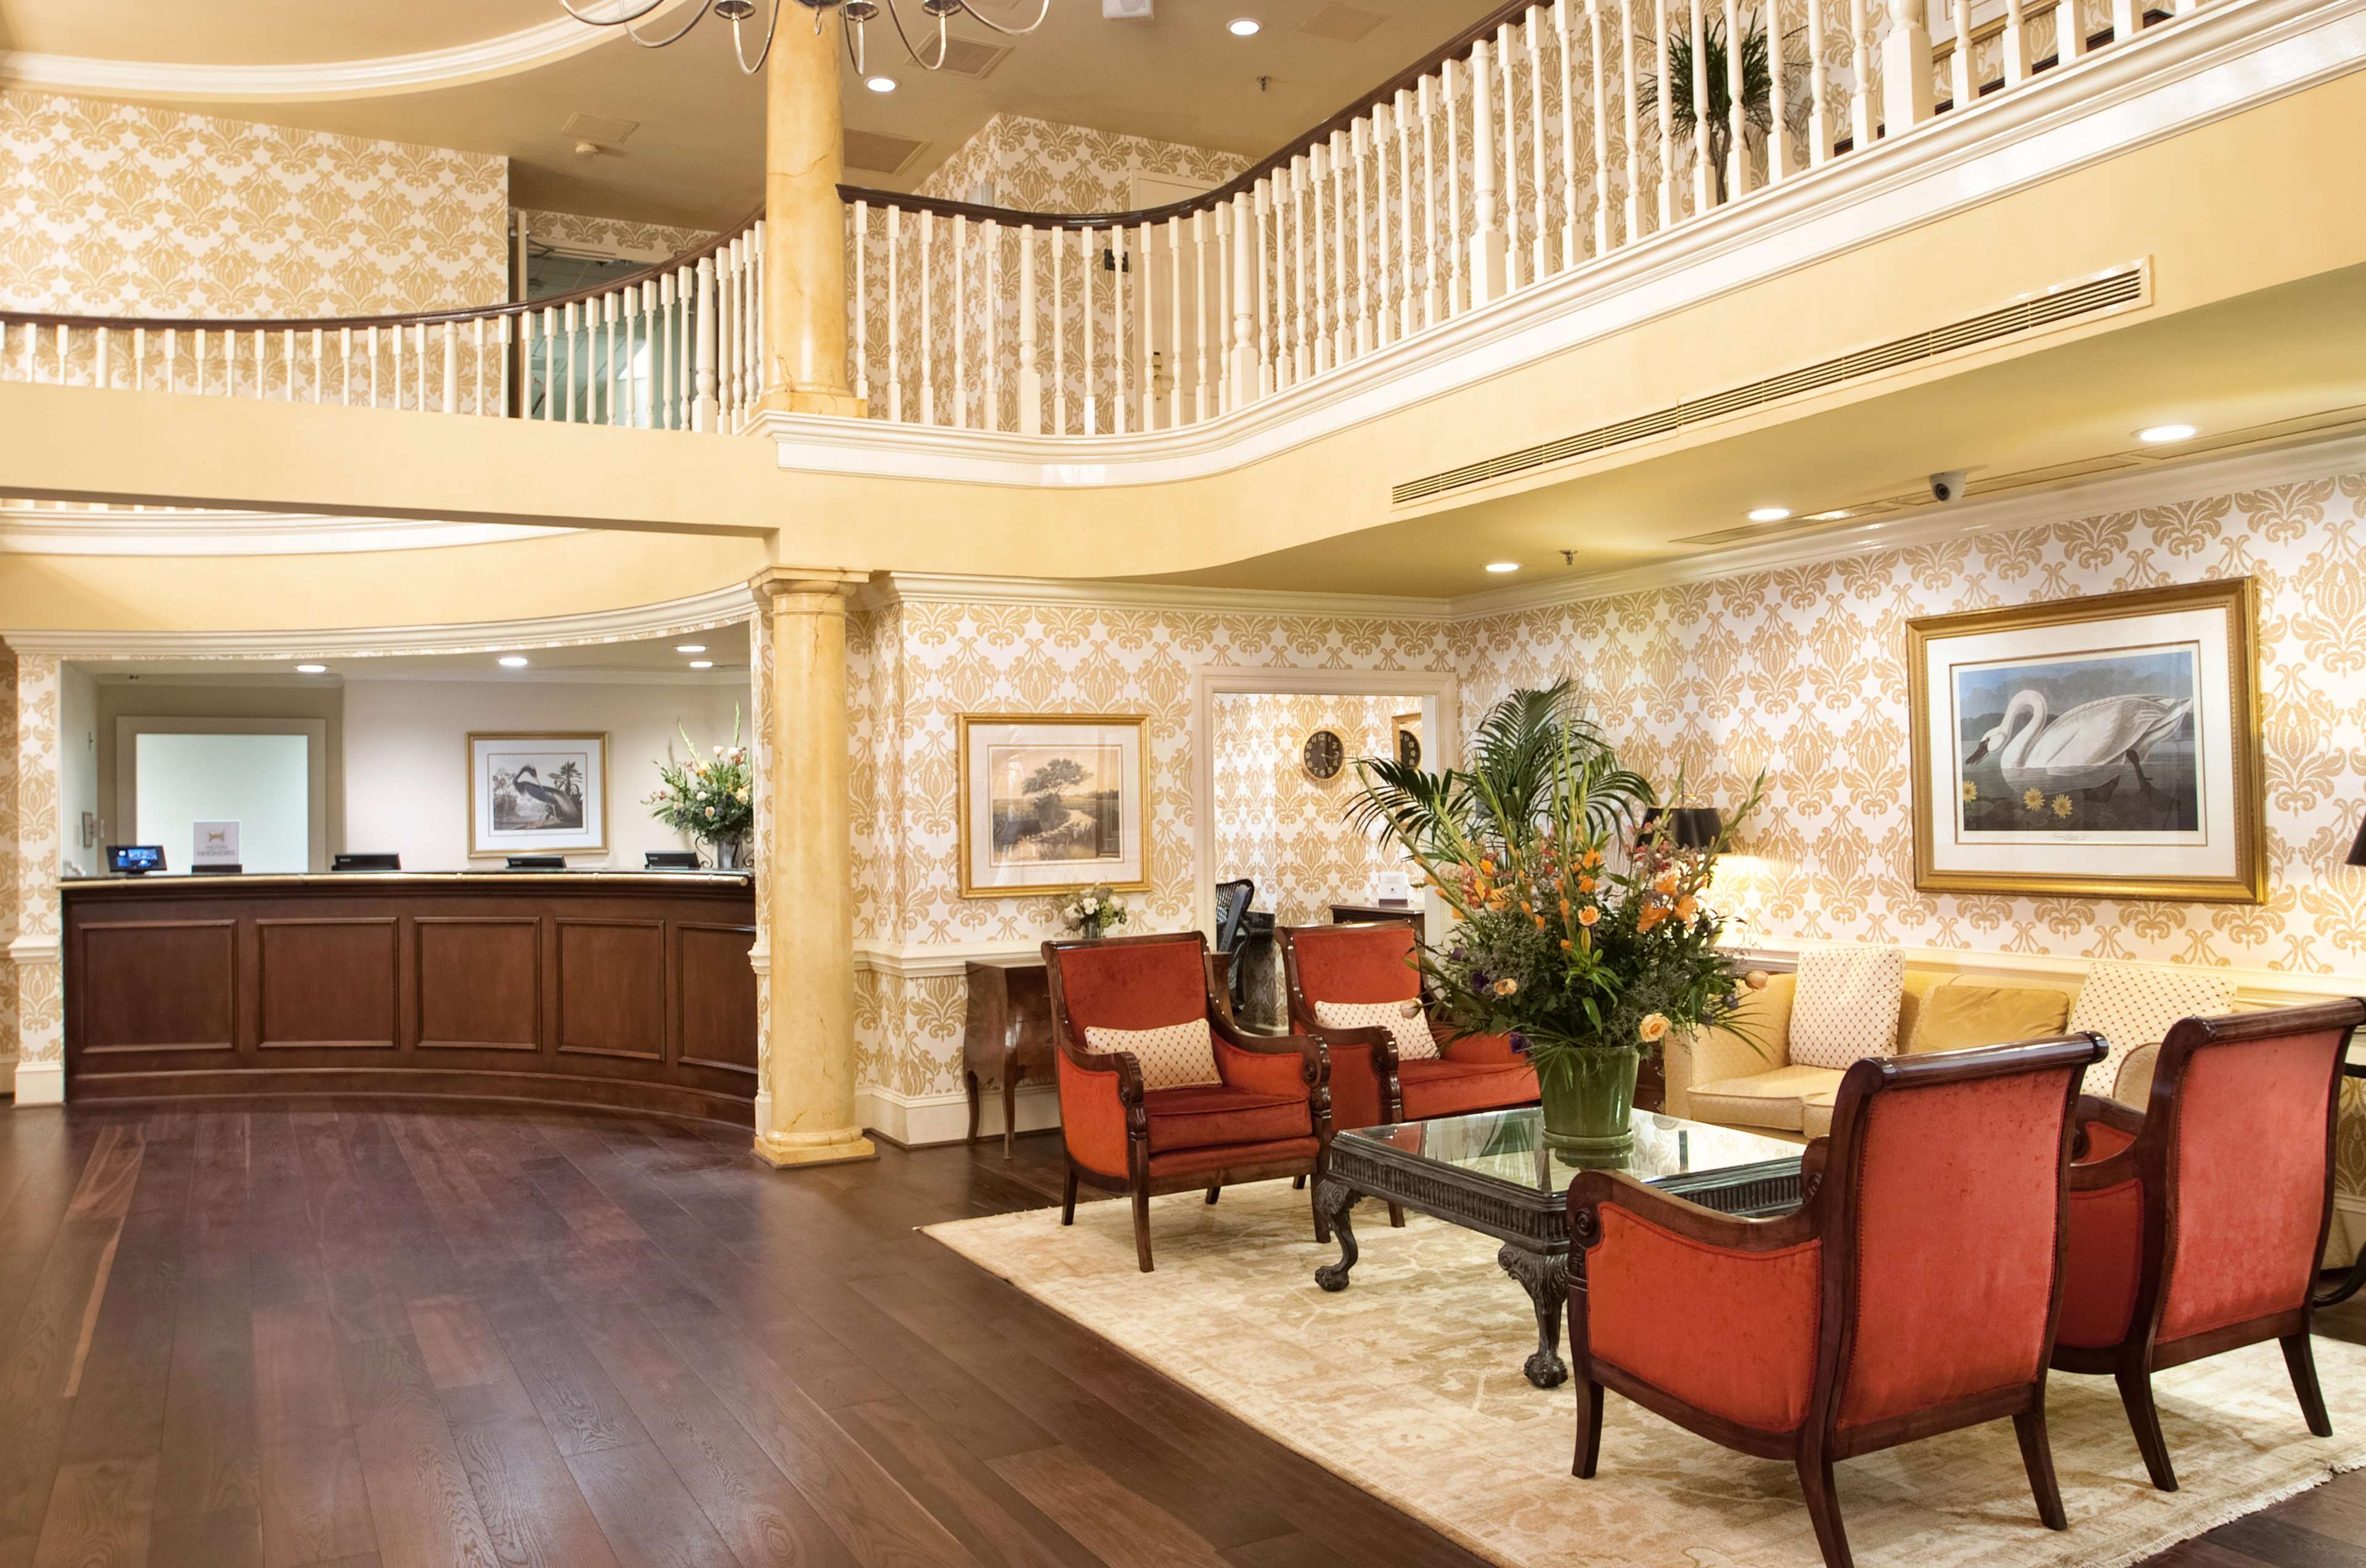 DoubleTree by Hilton Hotel & Suites Charleston - Historic District image 5